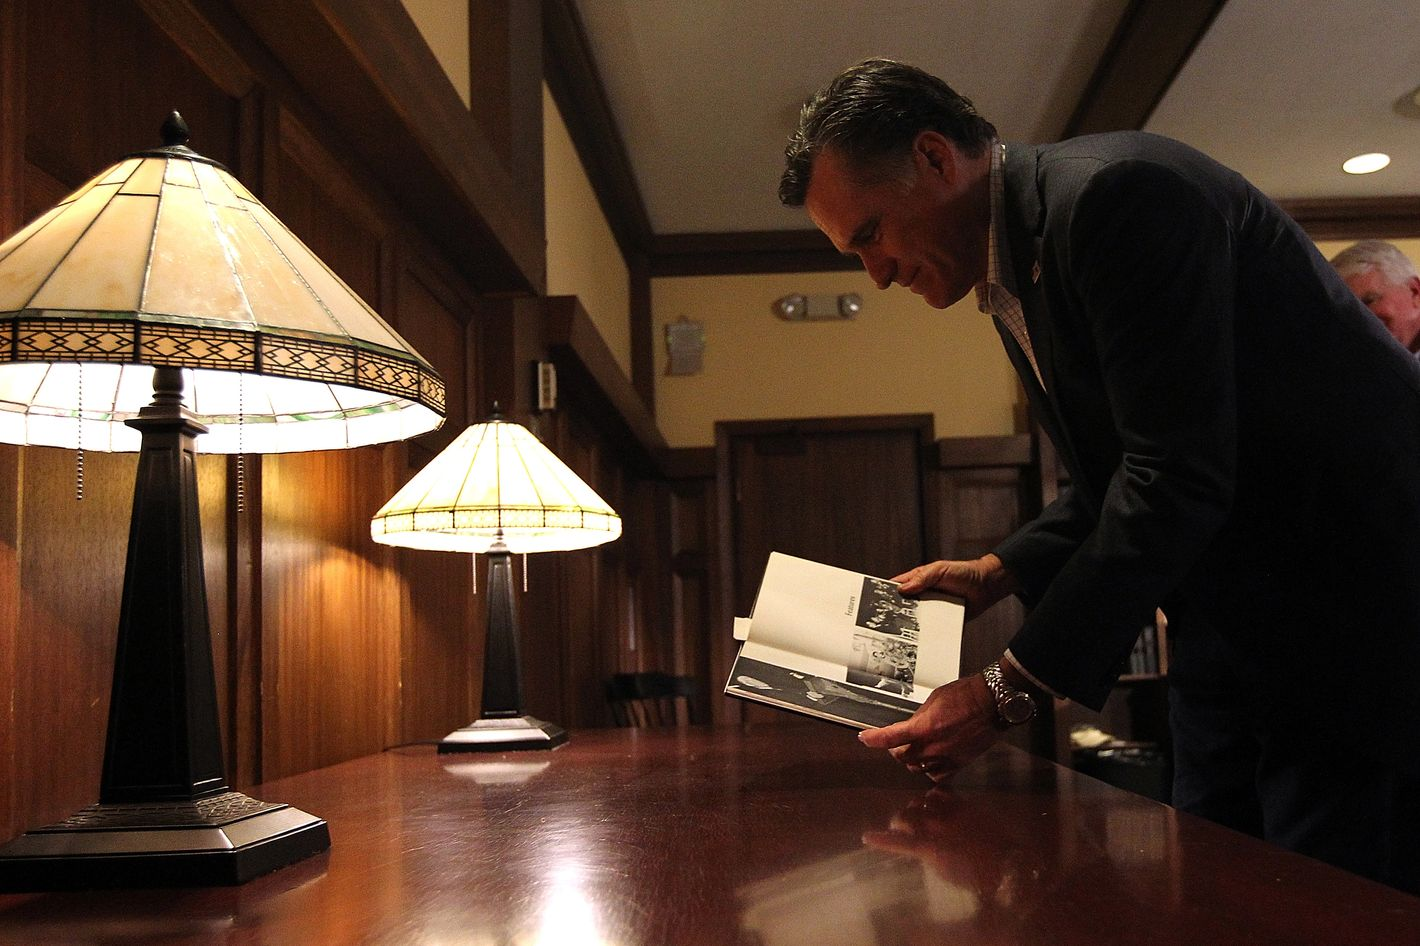 TILTON, NH - JANUARY 06:  Republican presidential candidate and former Massachusetts governor Mitt Romney looks at a copy of the 1968 Tilton School yearbook that features photos of his father when he was running for president before the start of a spaghetti dinner at Tilton School on January 6, 2012 in Tilton, New Hampshire. After spending a day campaigning in South Carolina, Mitt Romney returned to New Hampshire to make a final push ahead of the New Hampshire primary.  (Photo by Justin Sullivan/Getty Images)